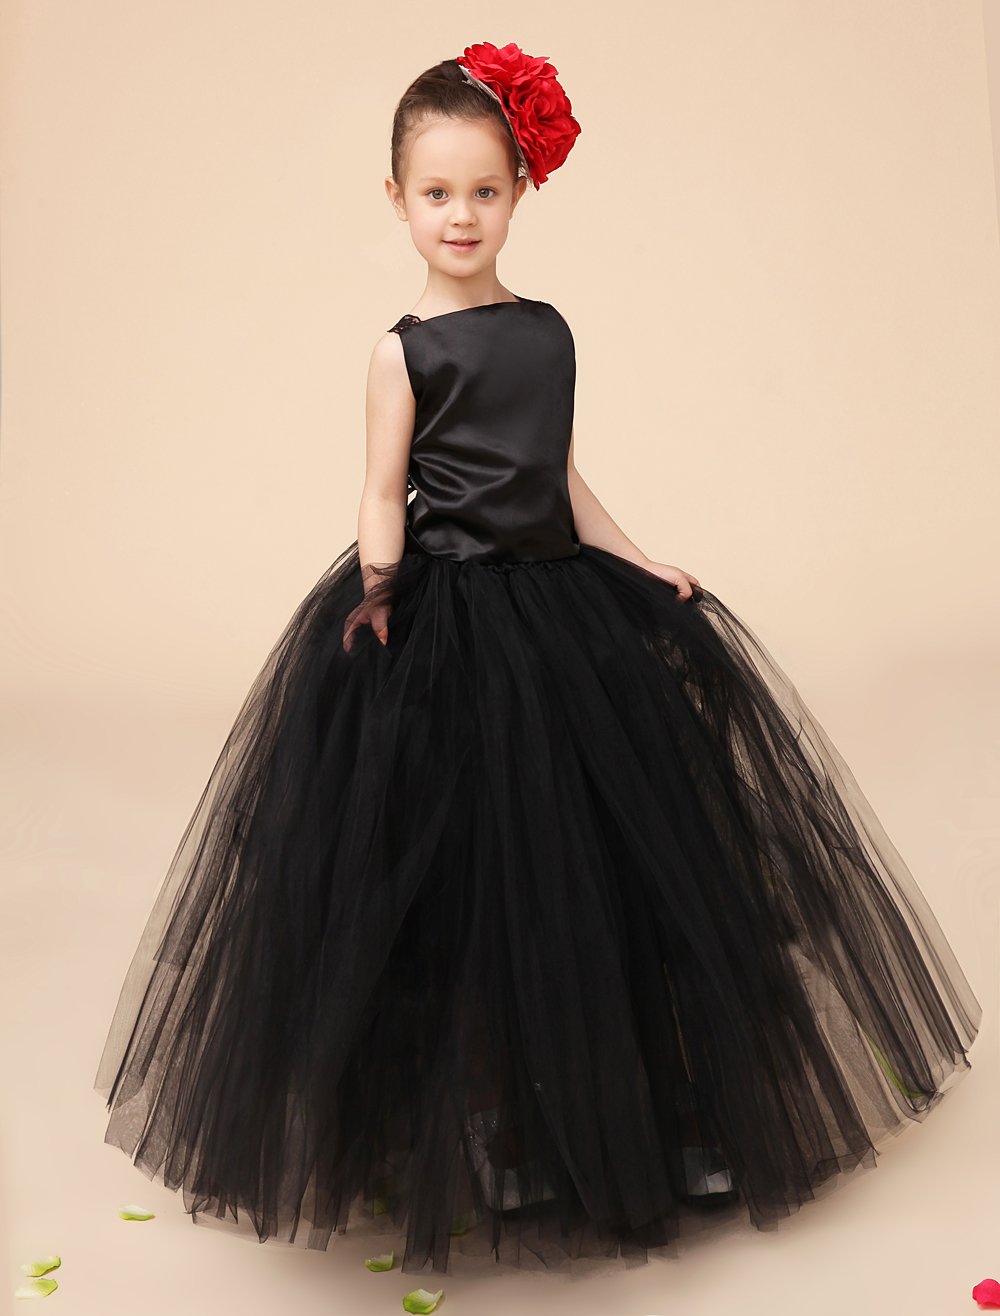 Party Dresses For Kids - Dress Xy